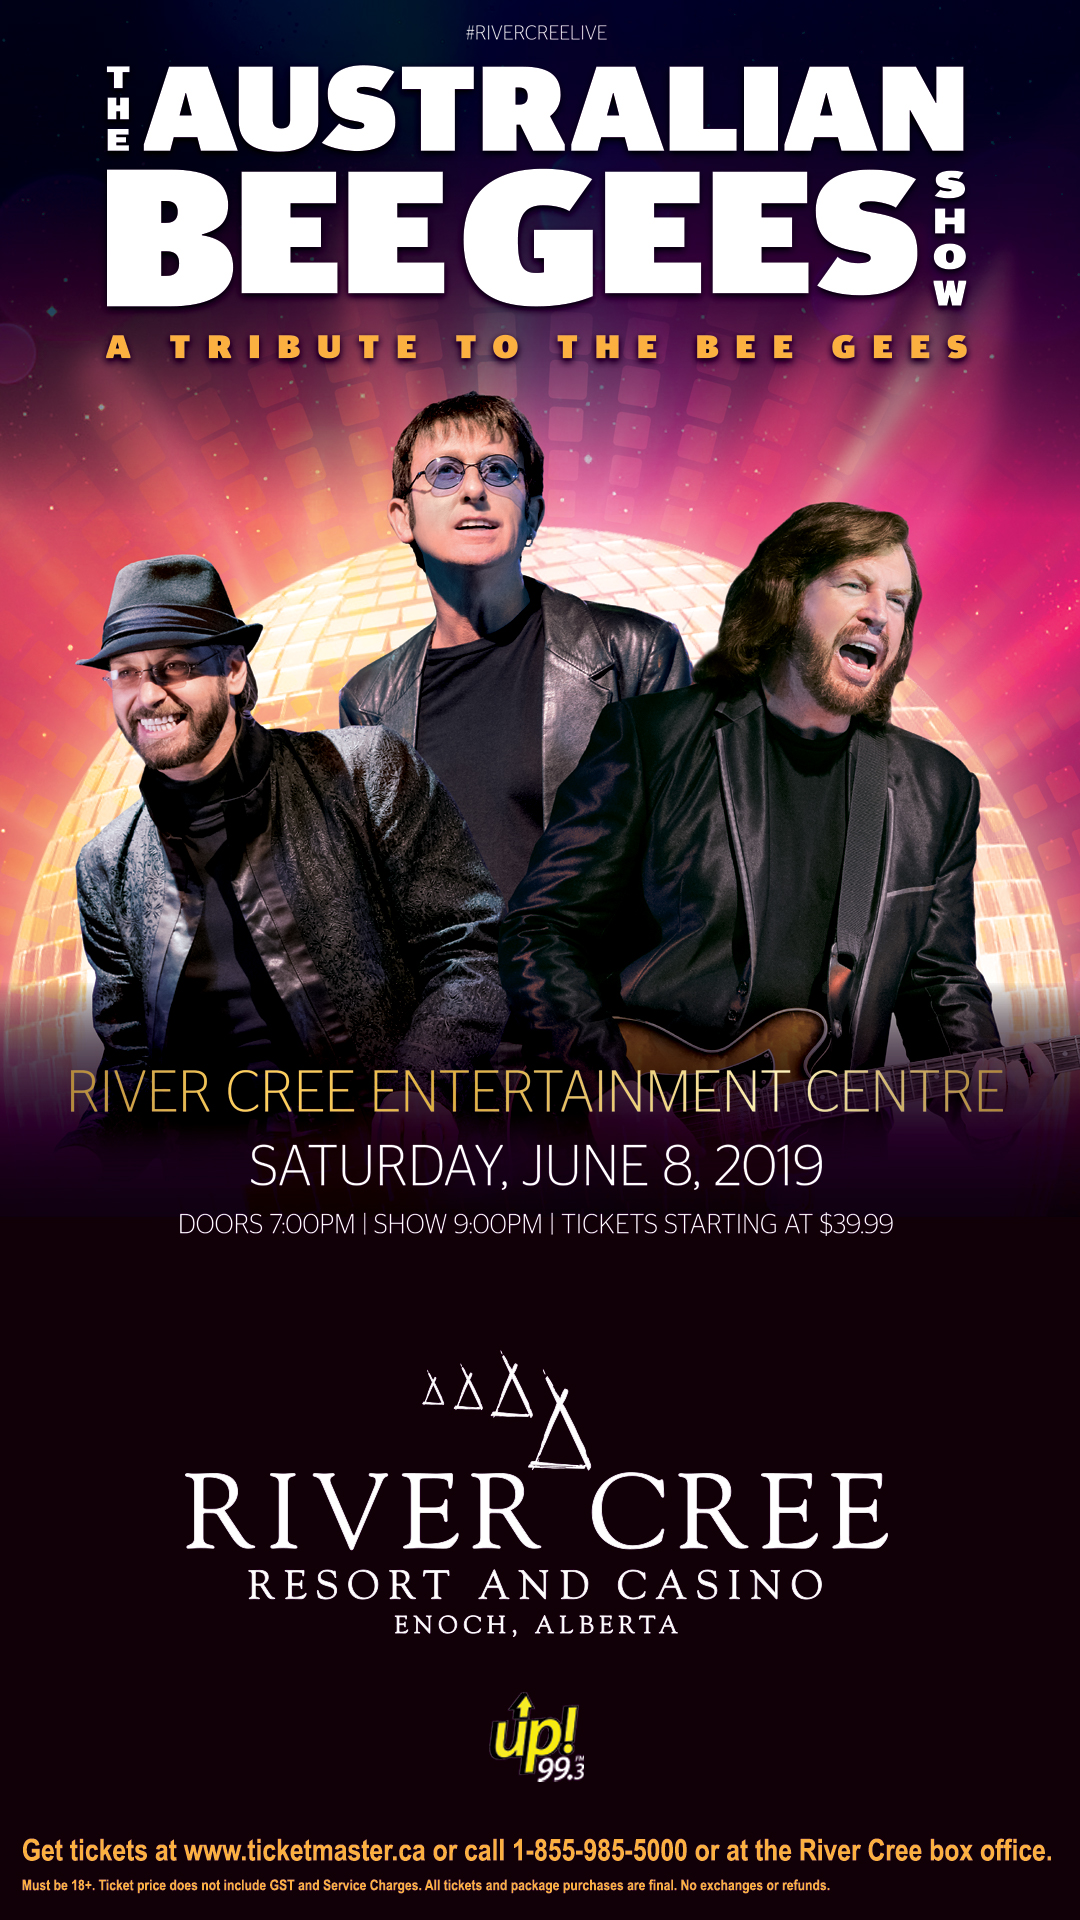 Win Tickets to The Australian Bee Gees Show